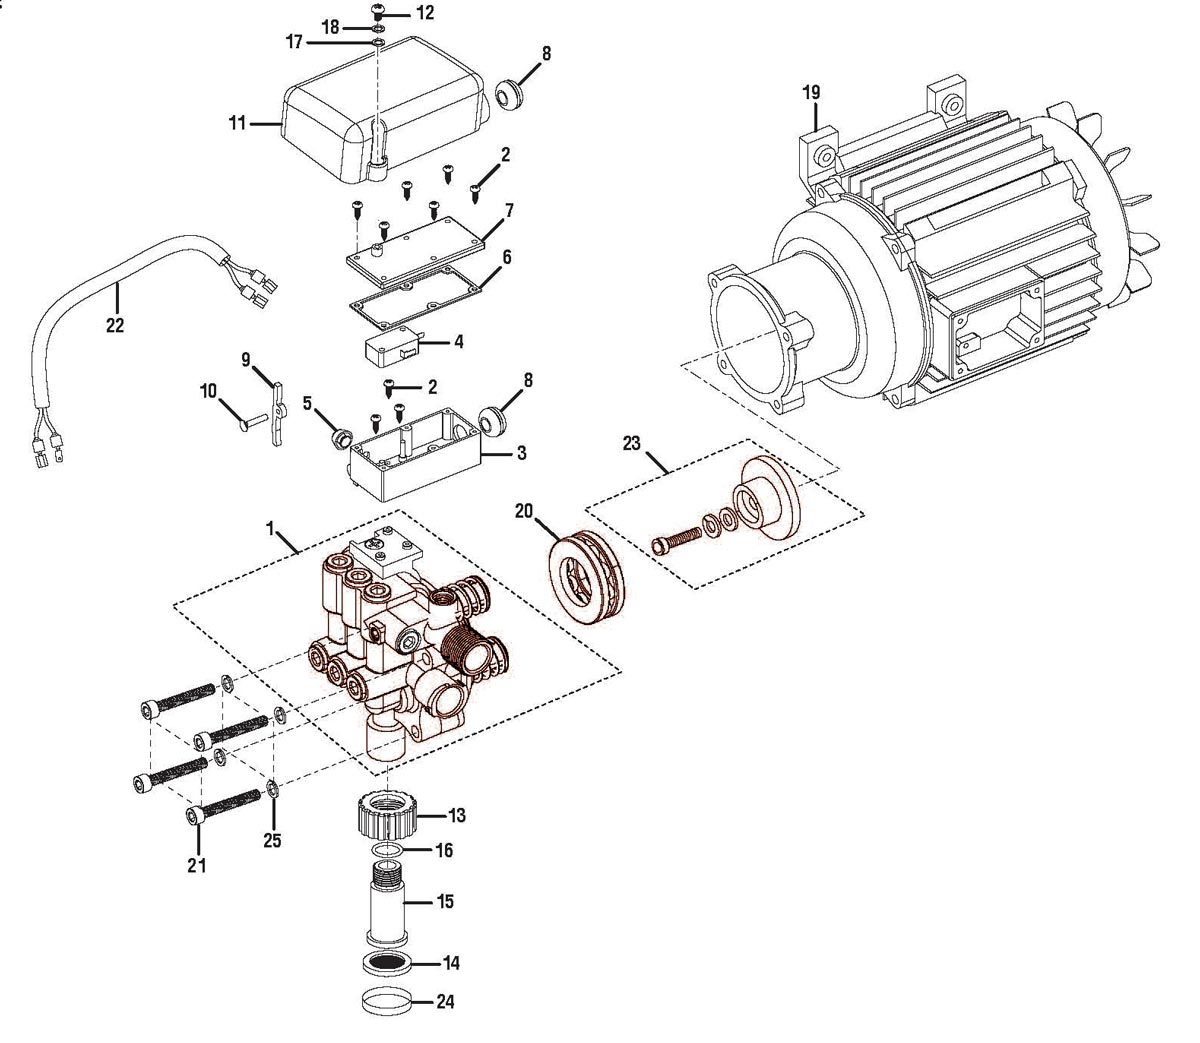 HL80220, 308653024 - Pressure Washer Parts schematic